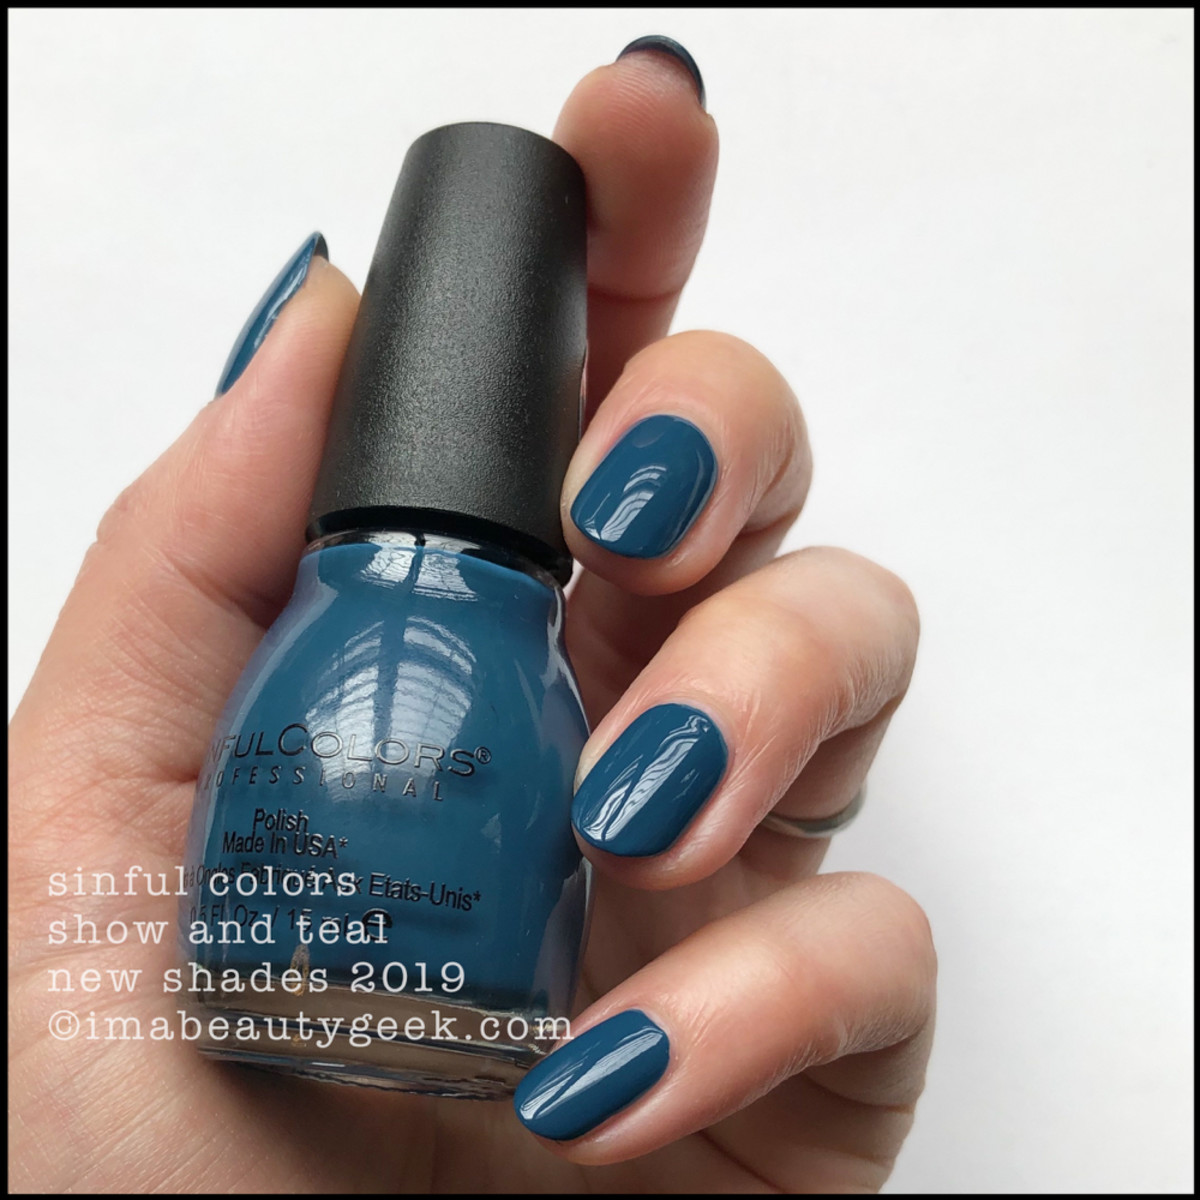 Sinful Colors Show and Teal - Sinful Colors Swatches 2019